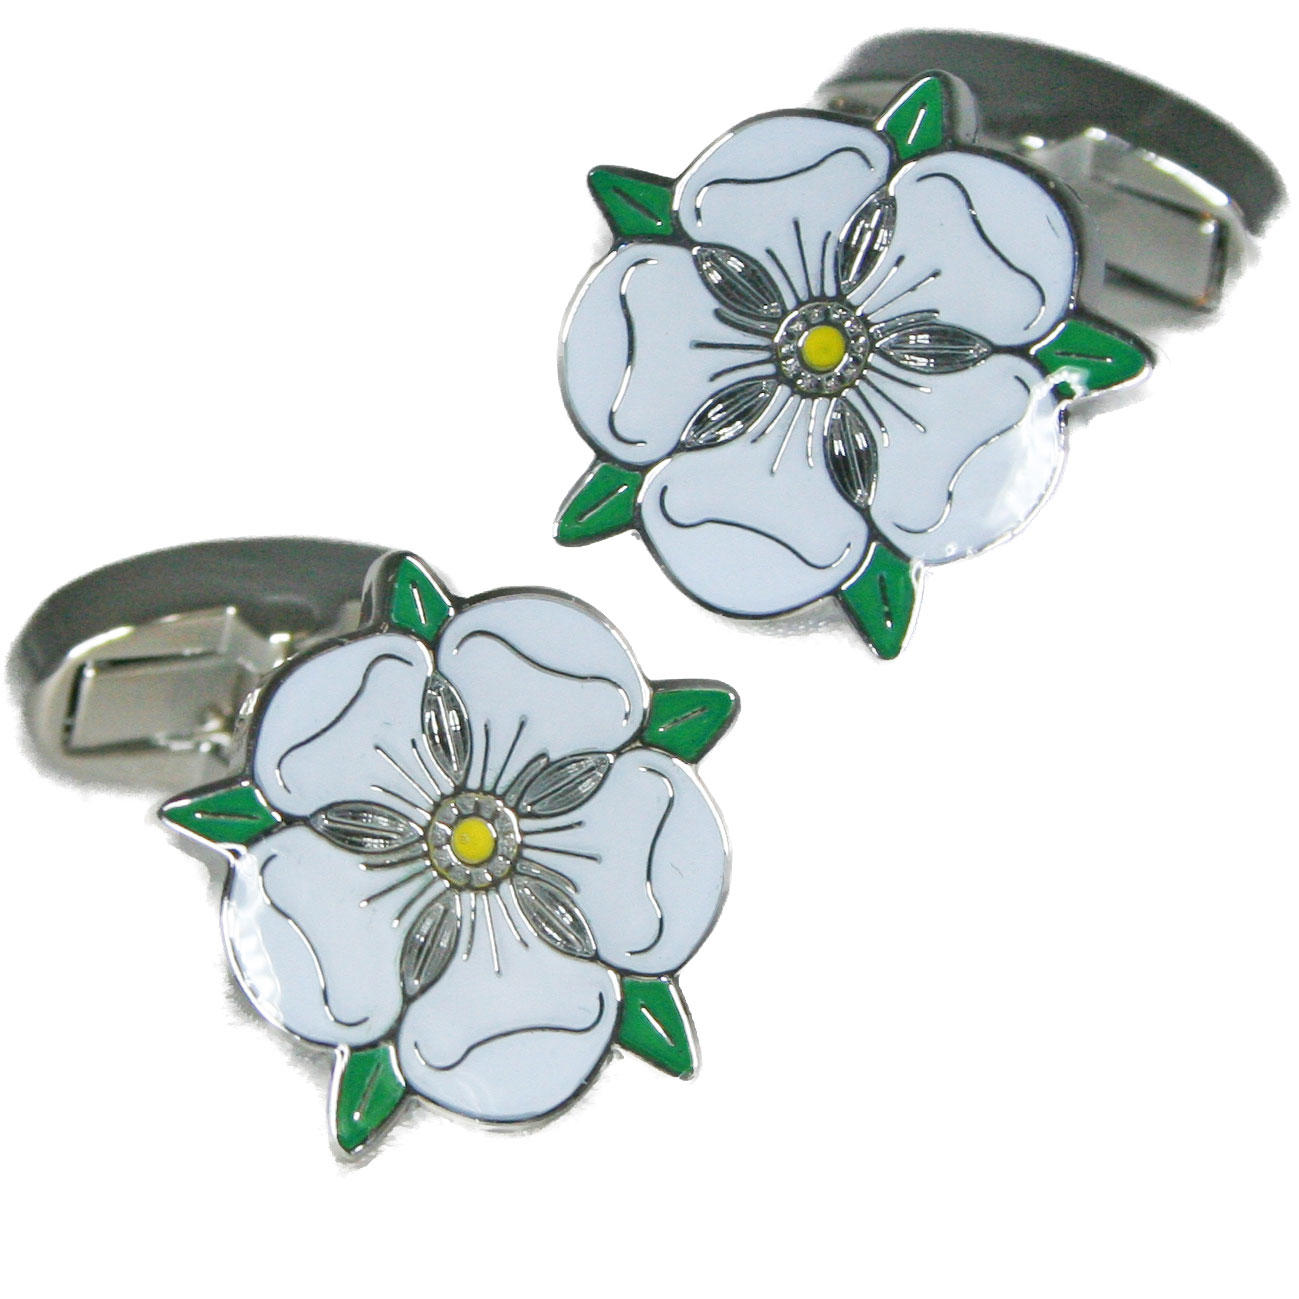 Yorkshire Rose Cufflinks from Cuffs & Co